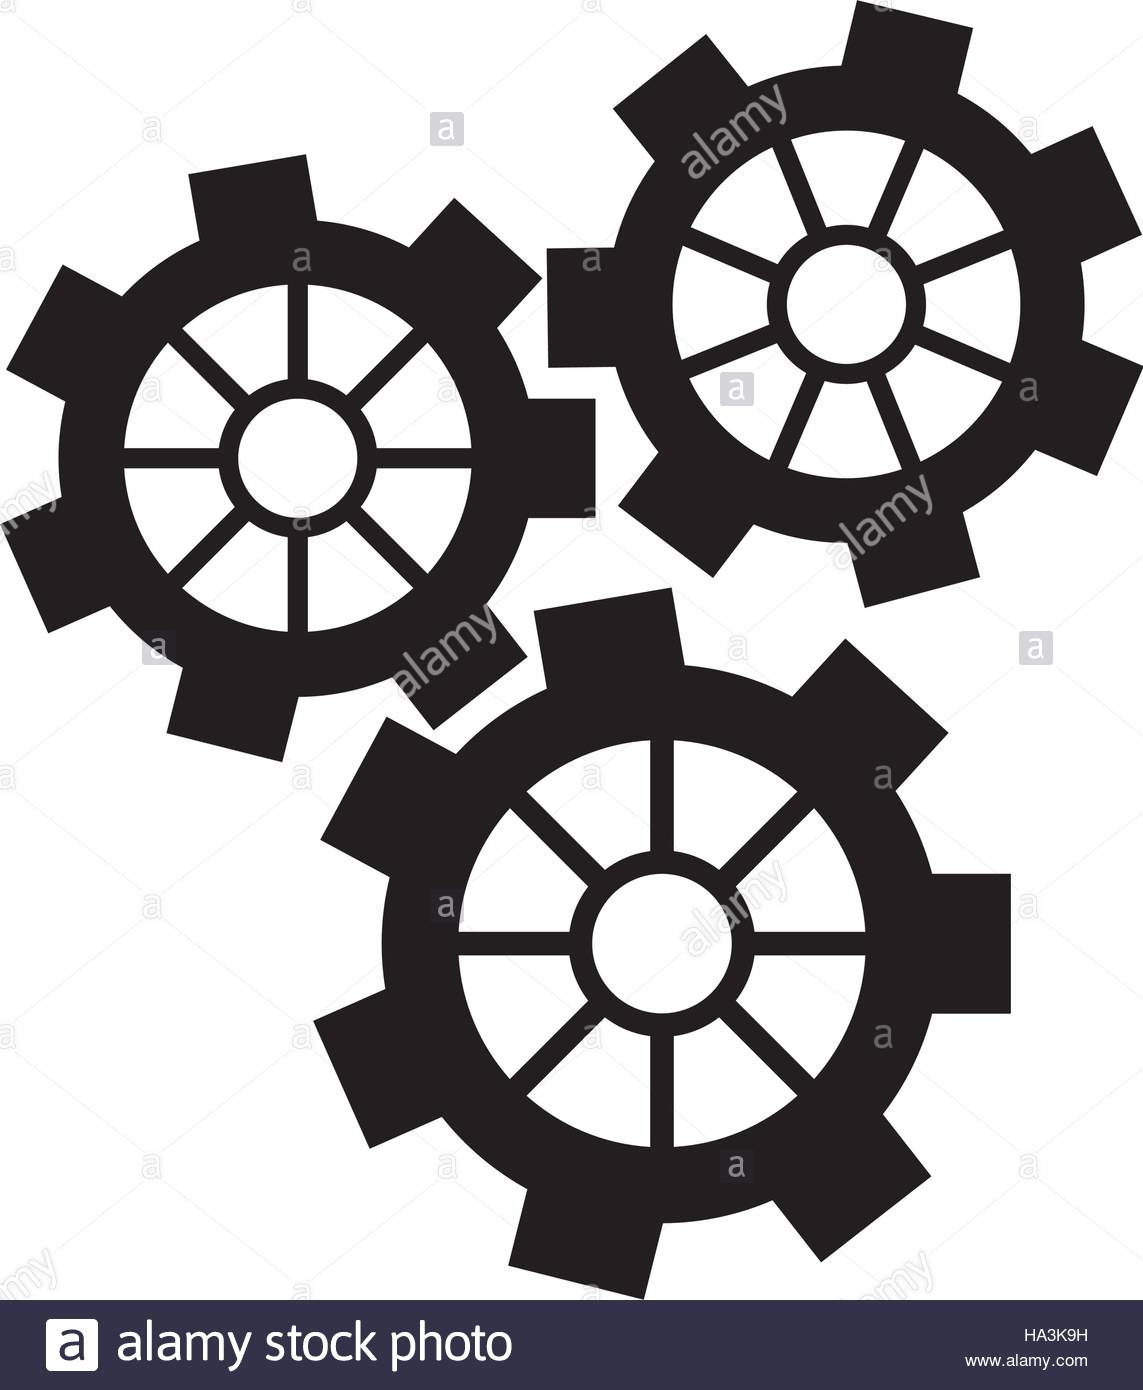 1143x1390 Silhouette Gear Wheel Engine Cog Icon Stock Vector Art